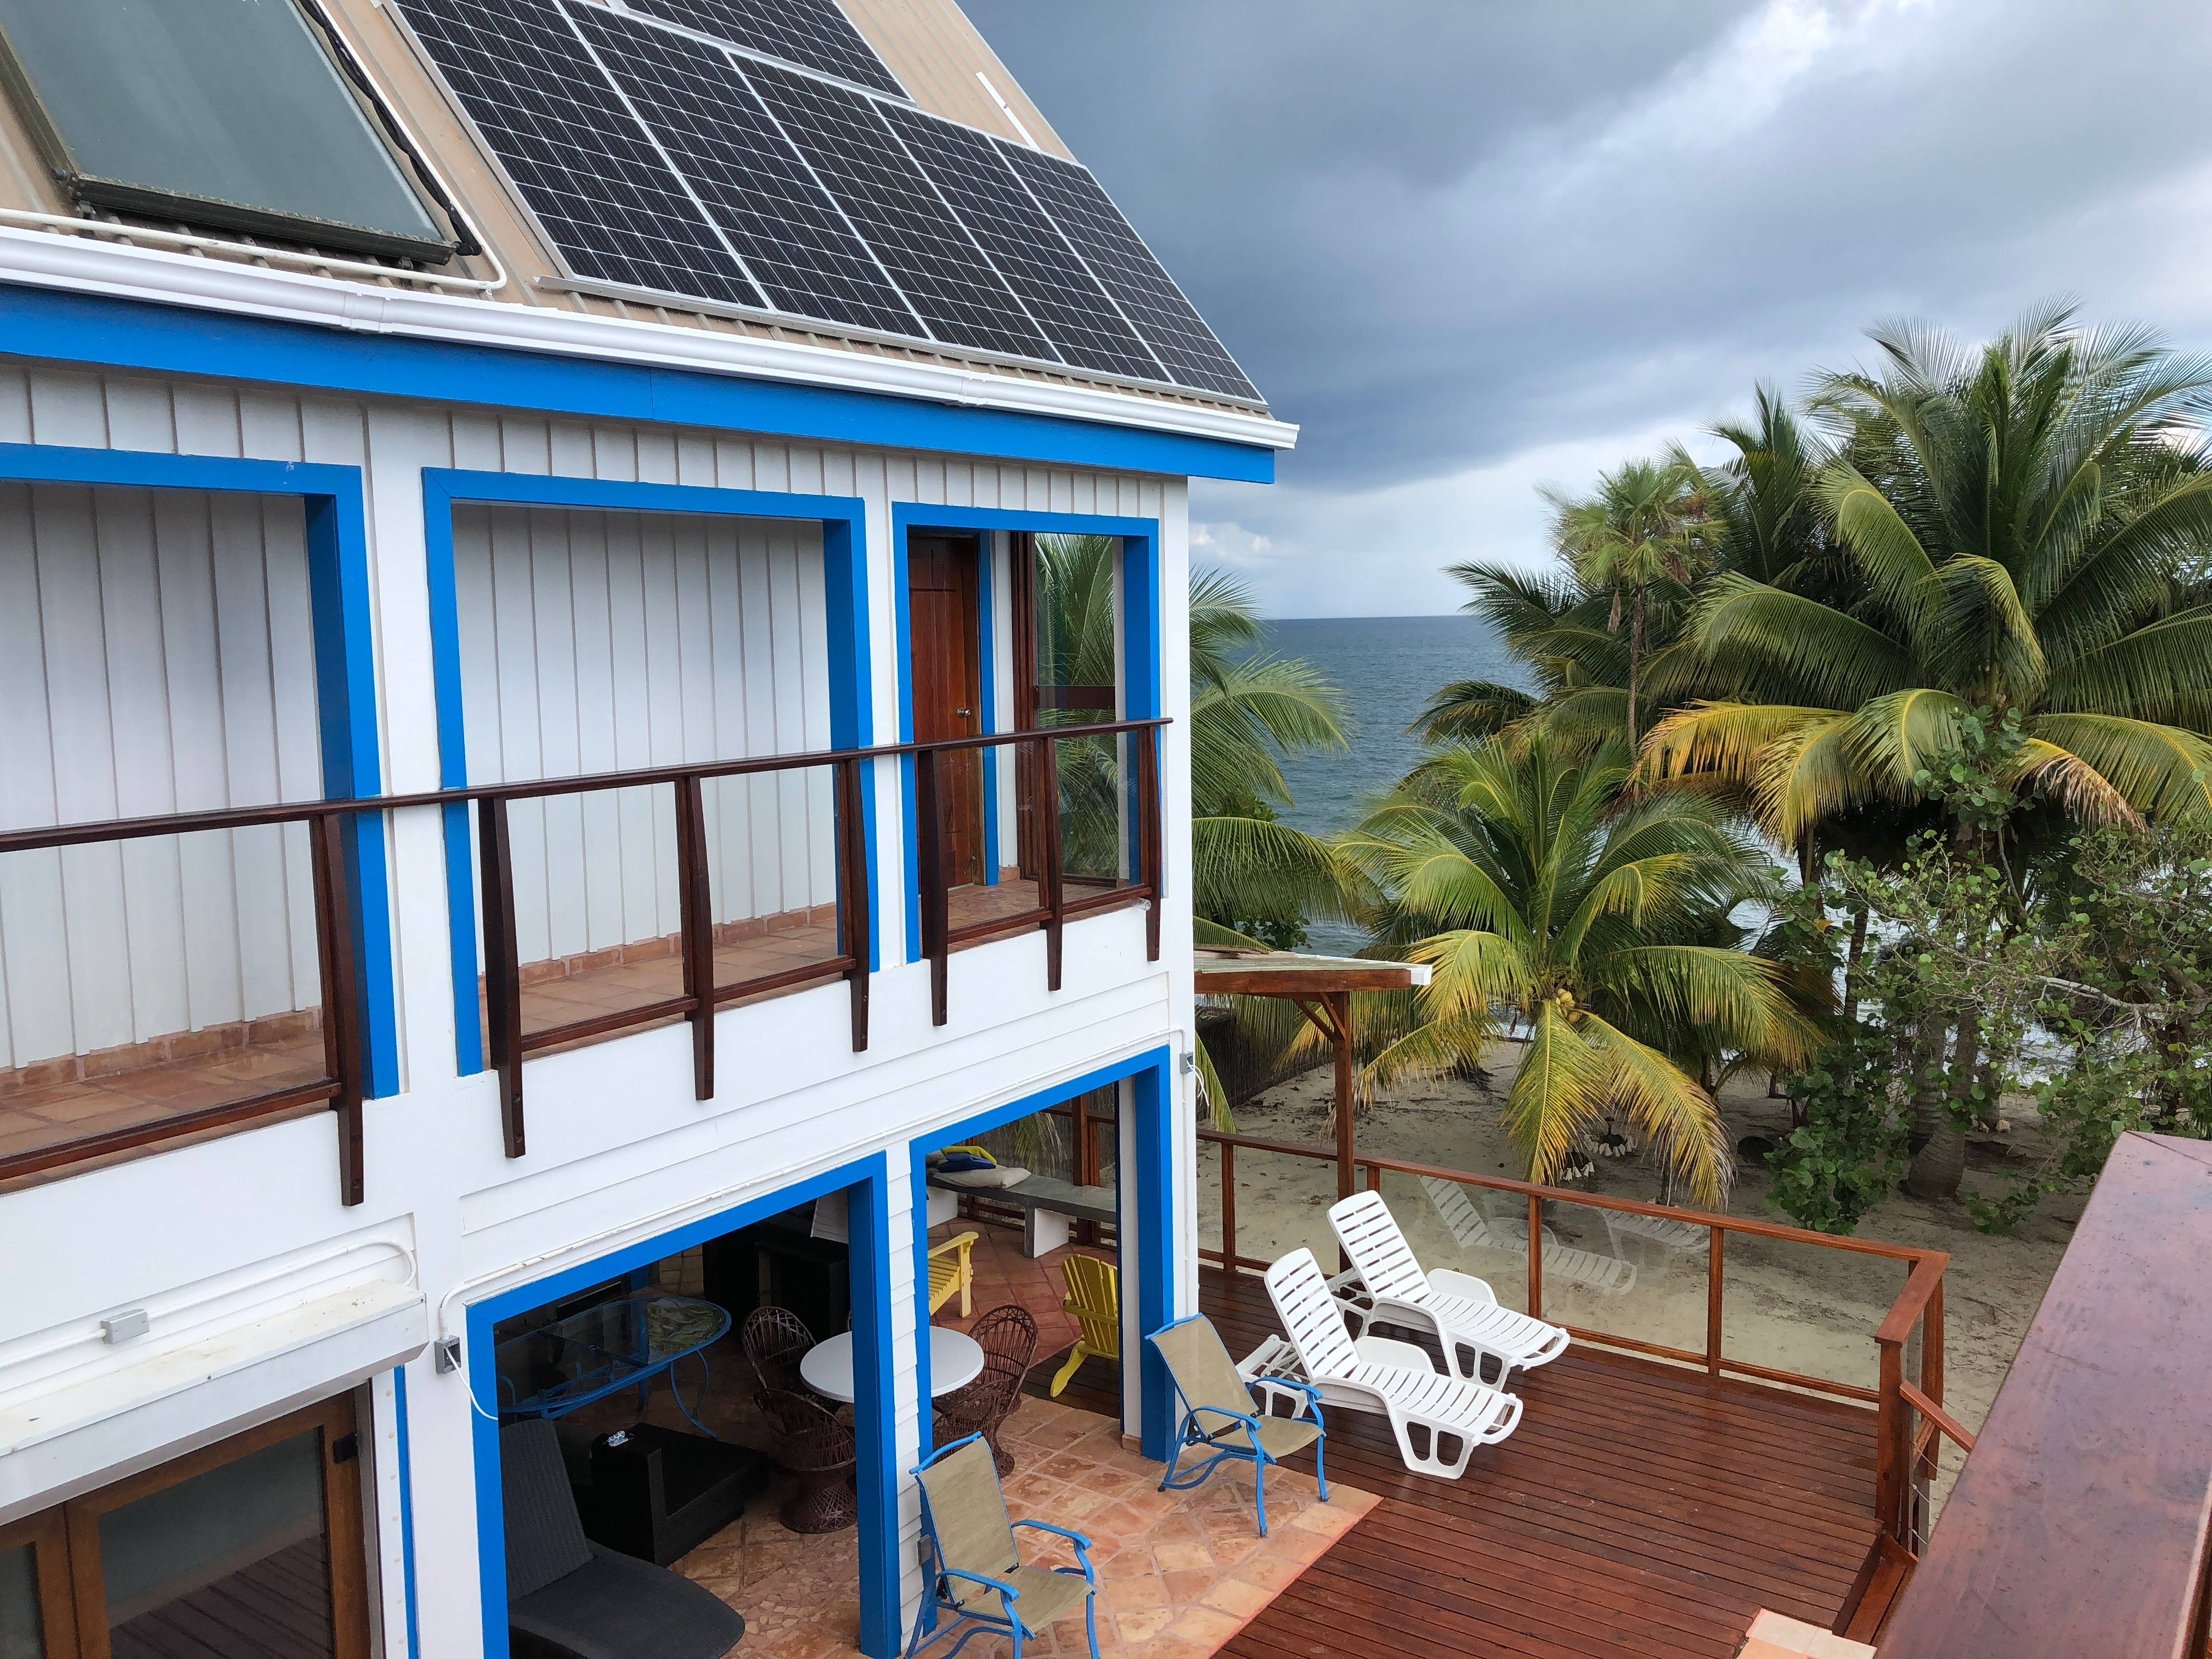 view of the deck from upstairs